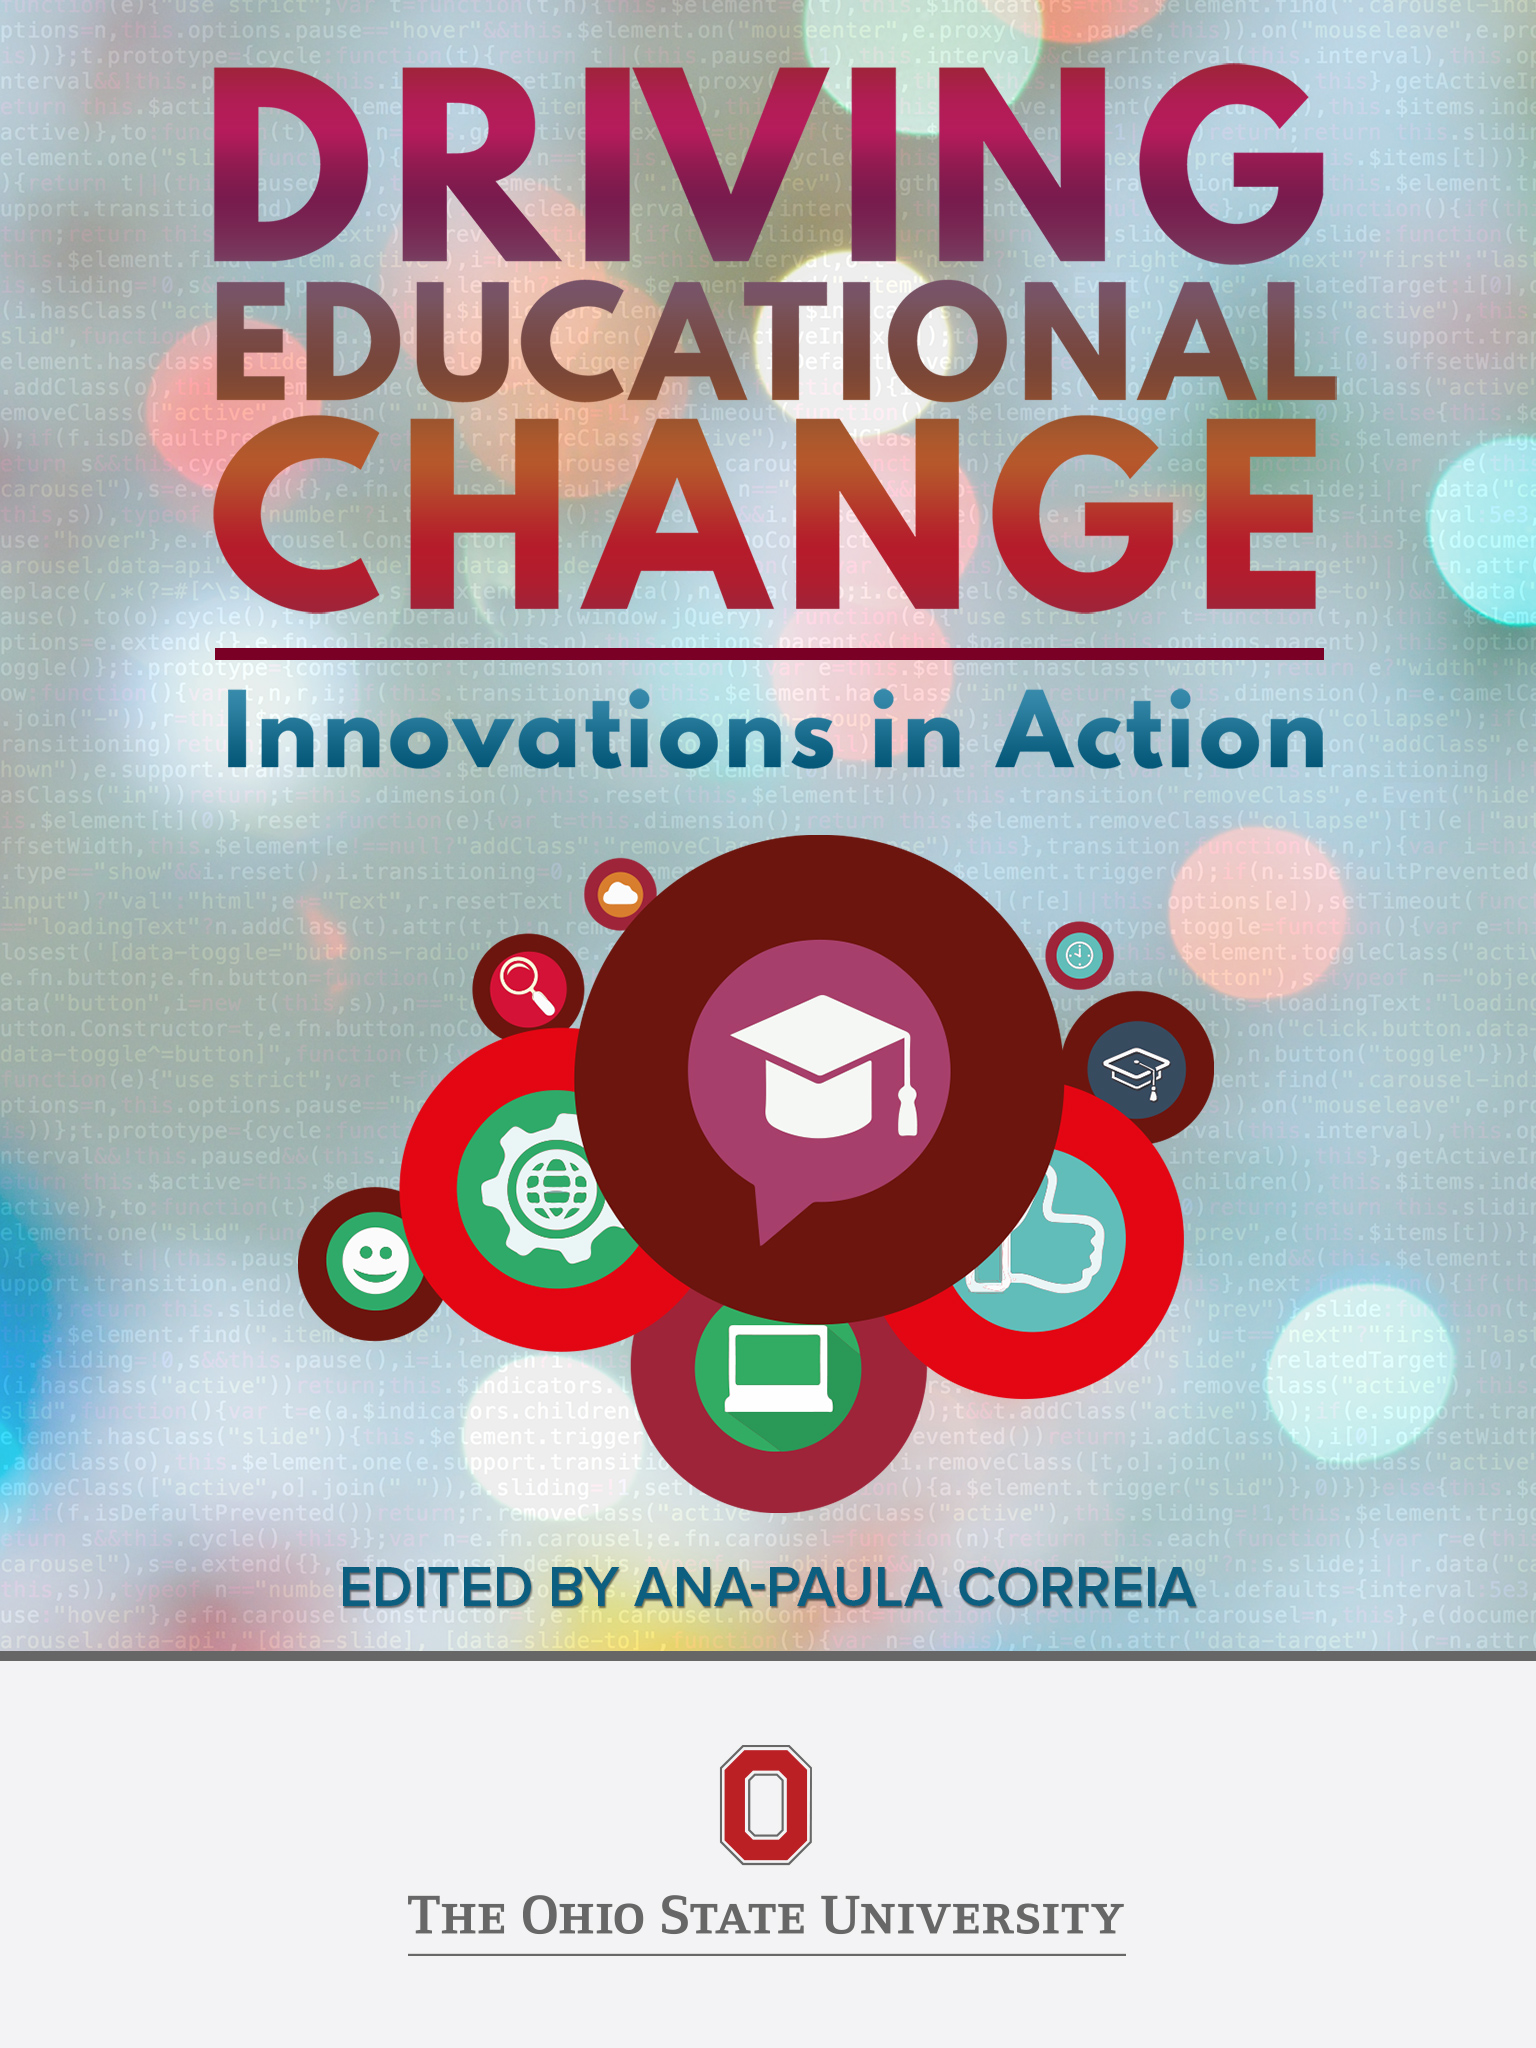 Cover image for Driving Educational Change: Innovations in Action